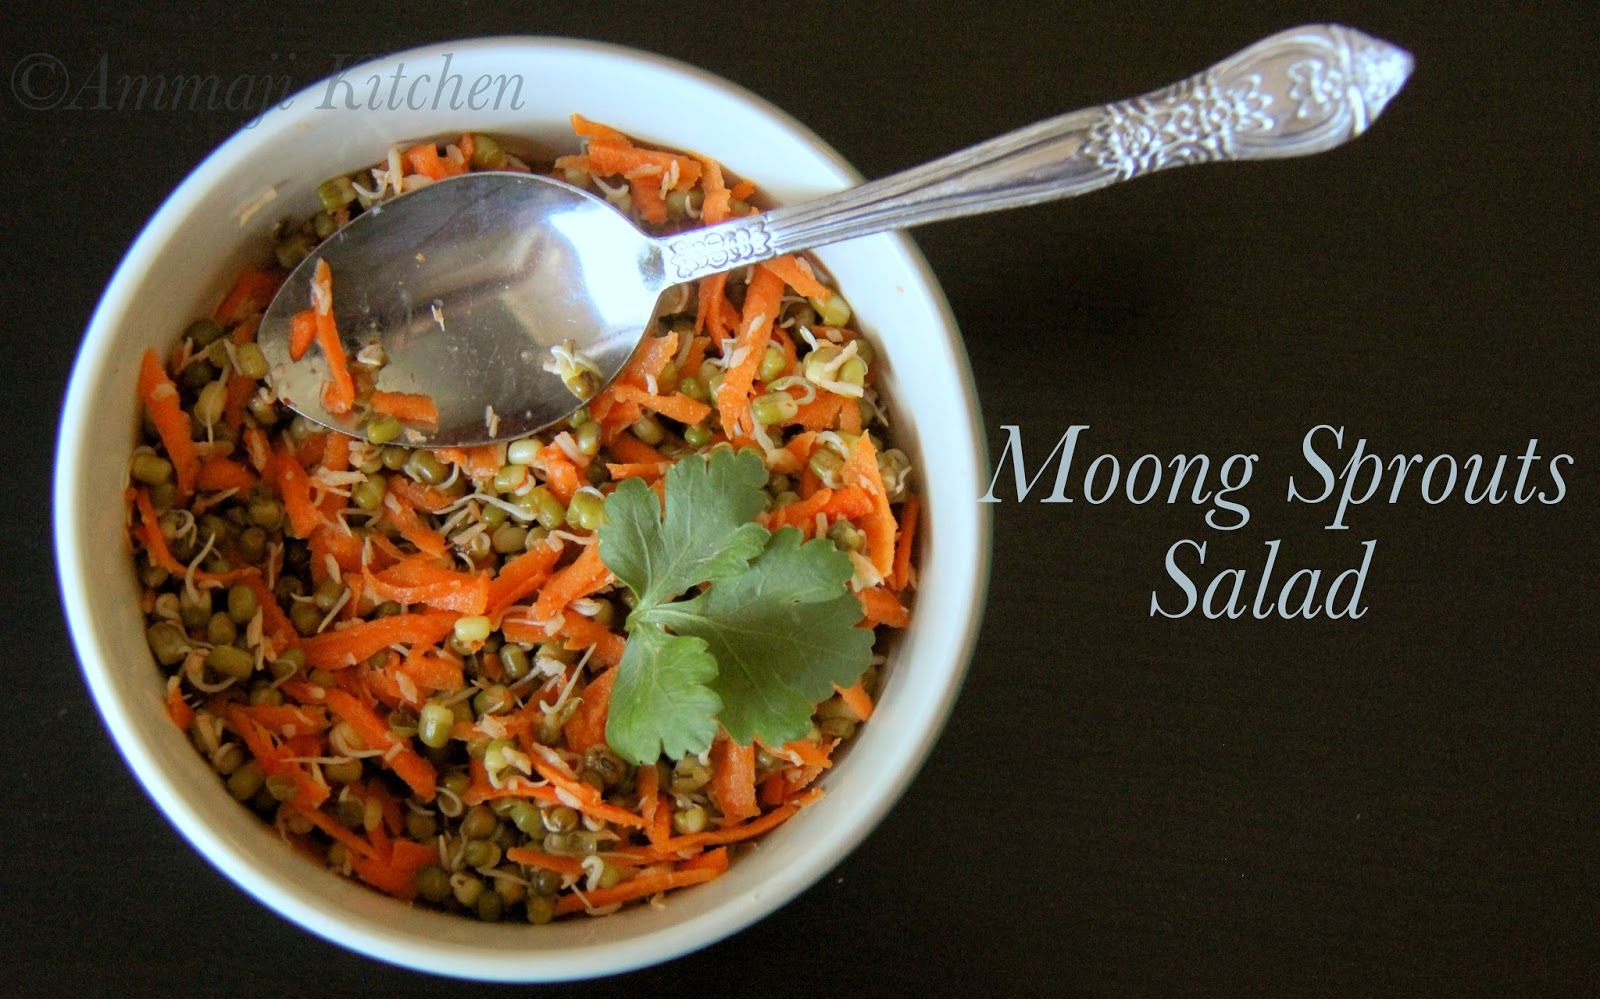 Mung Sprouts Salad | Moong Sprouts Salad | Sprouts Salad